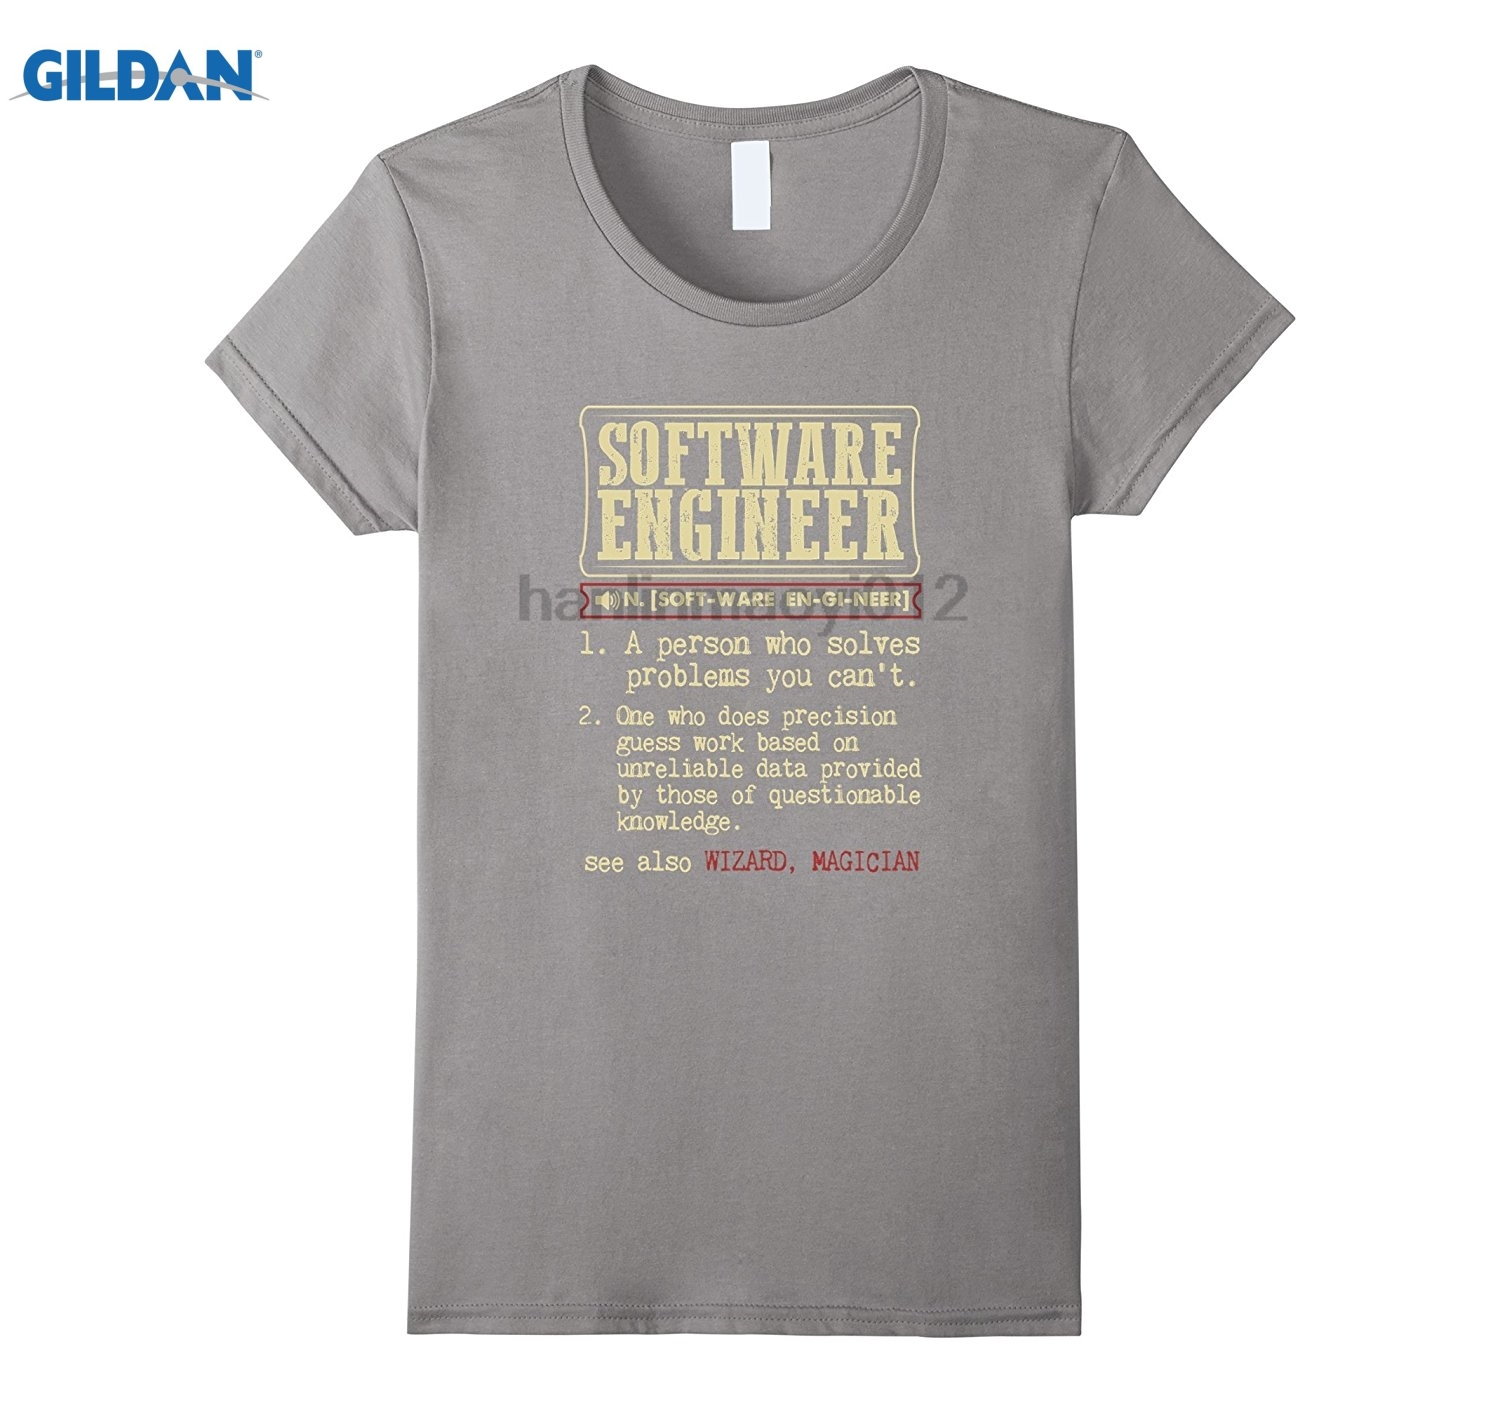 GILDAN Software Engineer Dictionary Term T-Shirt Dress female T-shirt